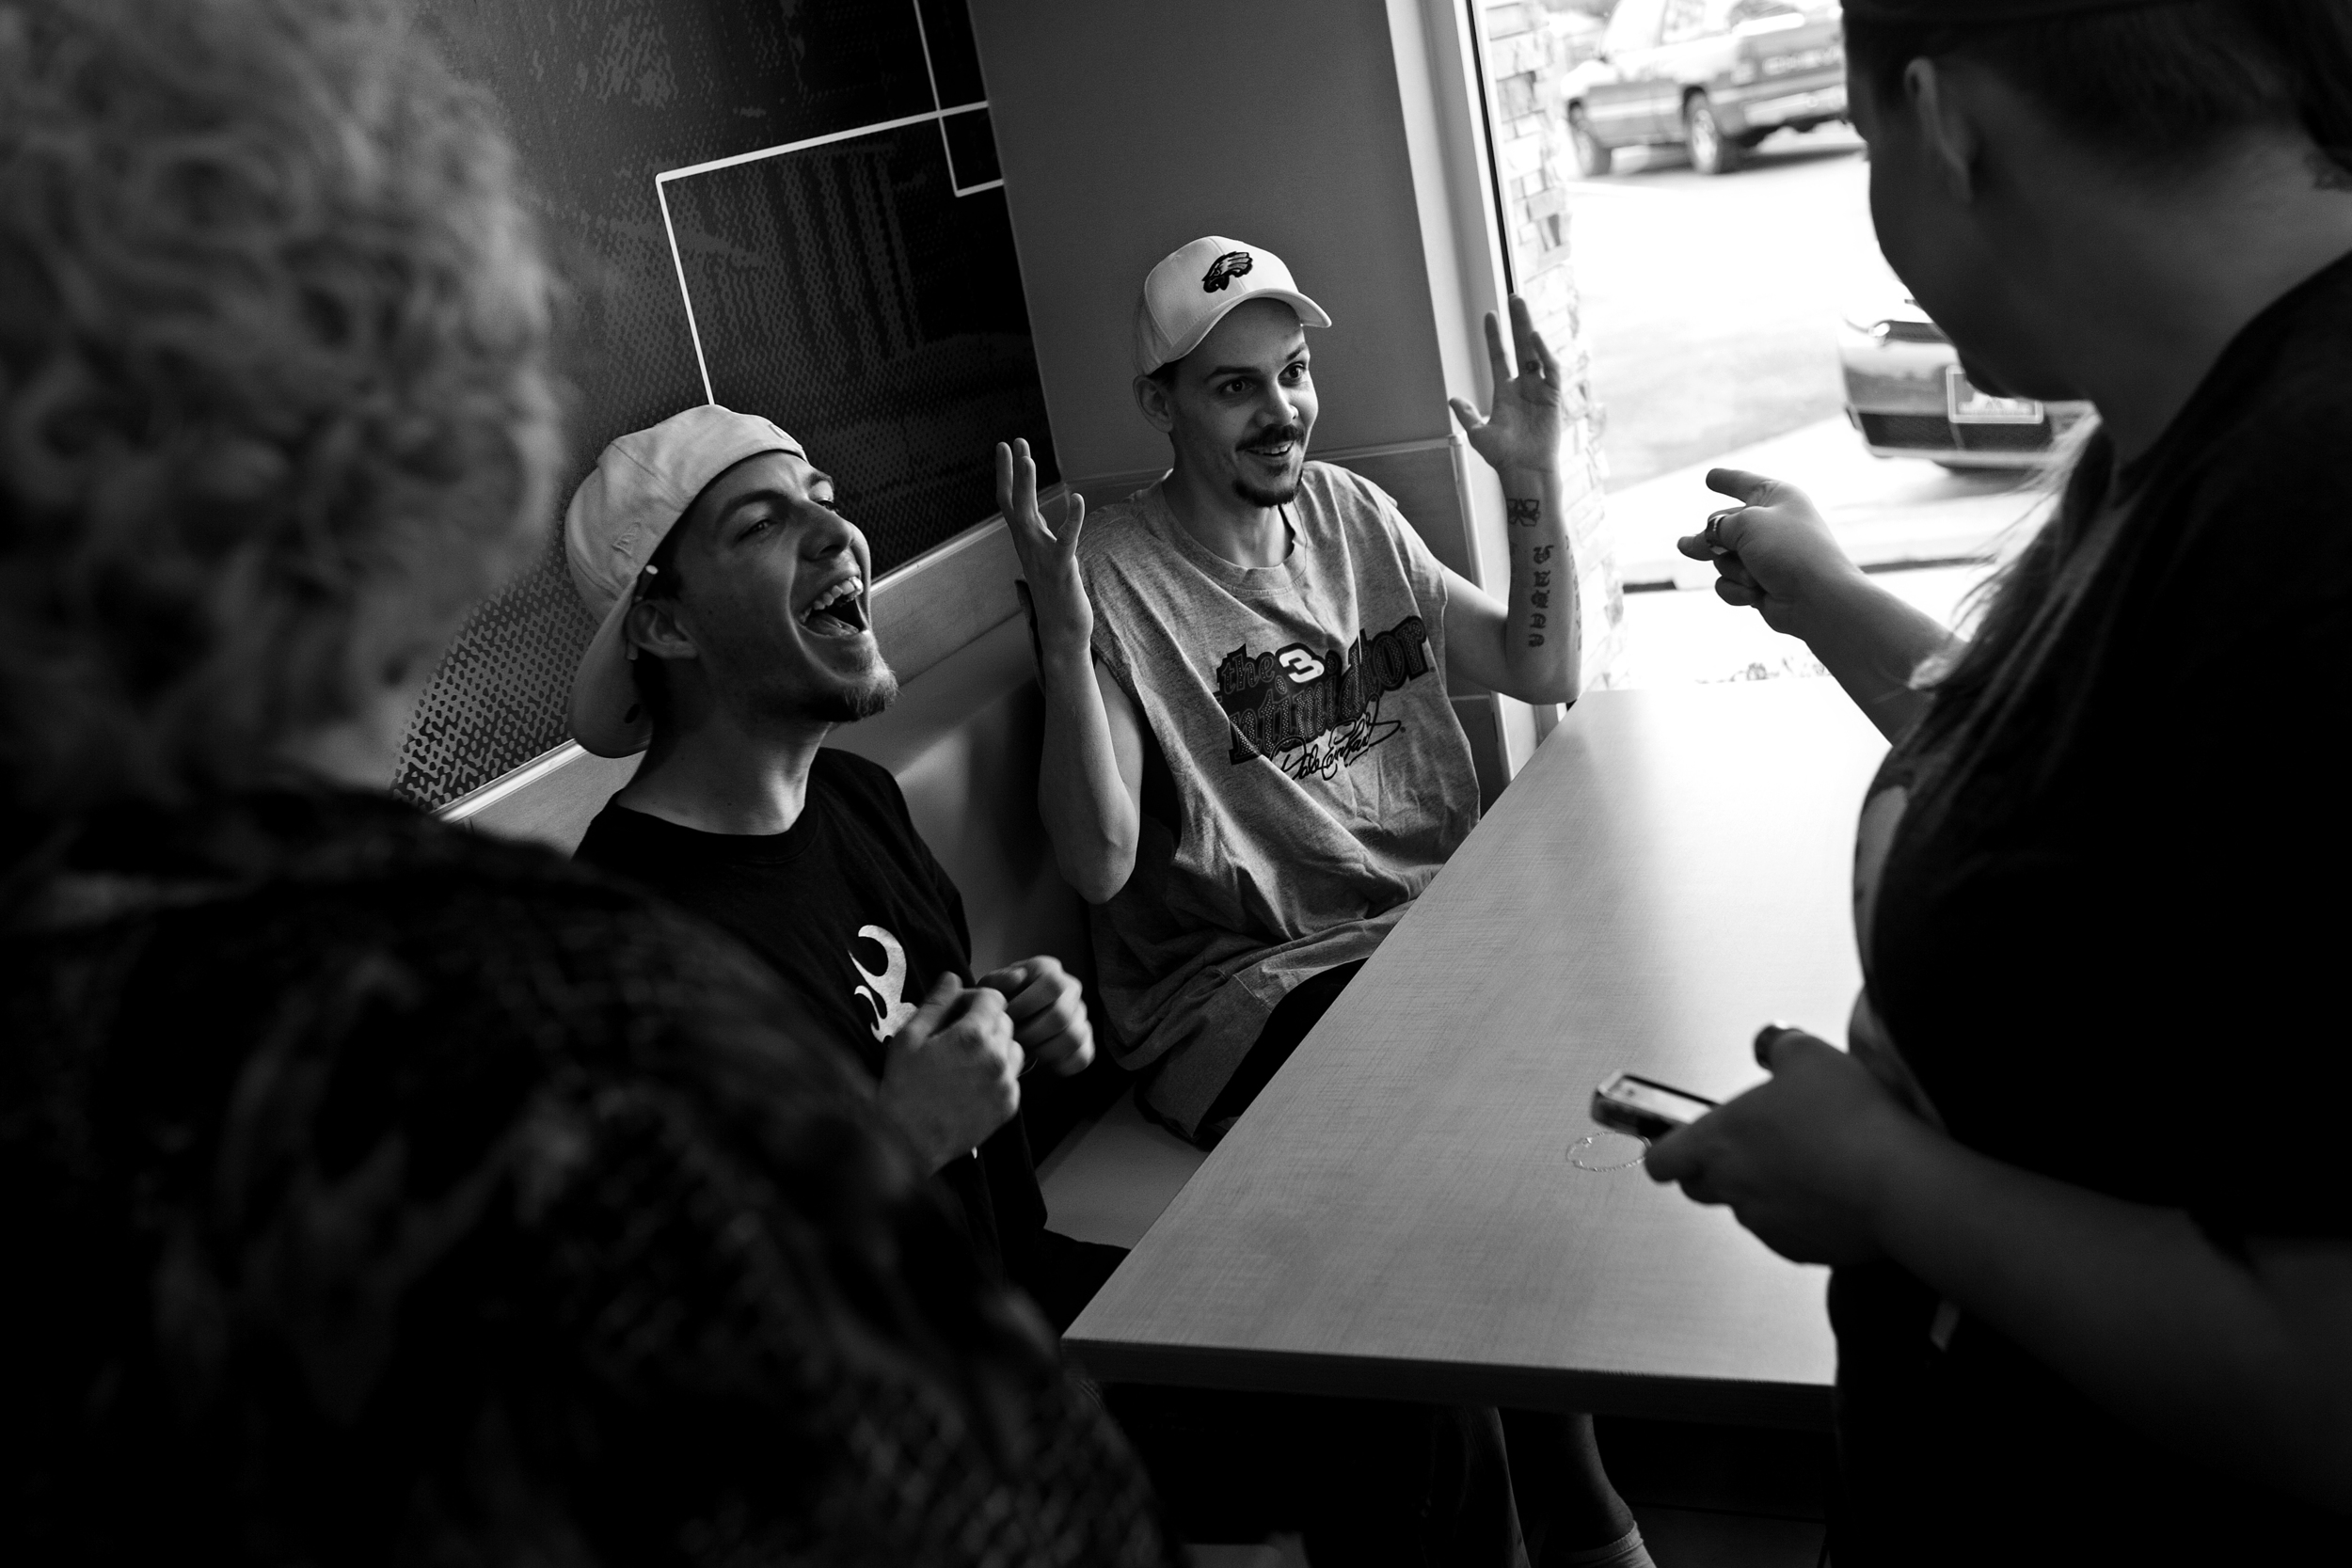 """After his release from jail, Paul's mood is light as he eats at a McDonald's with his mother, his wife and his nephew Brandon Ellett. Lynda is encouraged at moments like this when a happier spirit breaks through the darkness of his mental illness. """"He's a great guy,"""" she said. """"I want you to understand. He's got a heart of gold."""""""